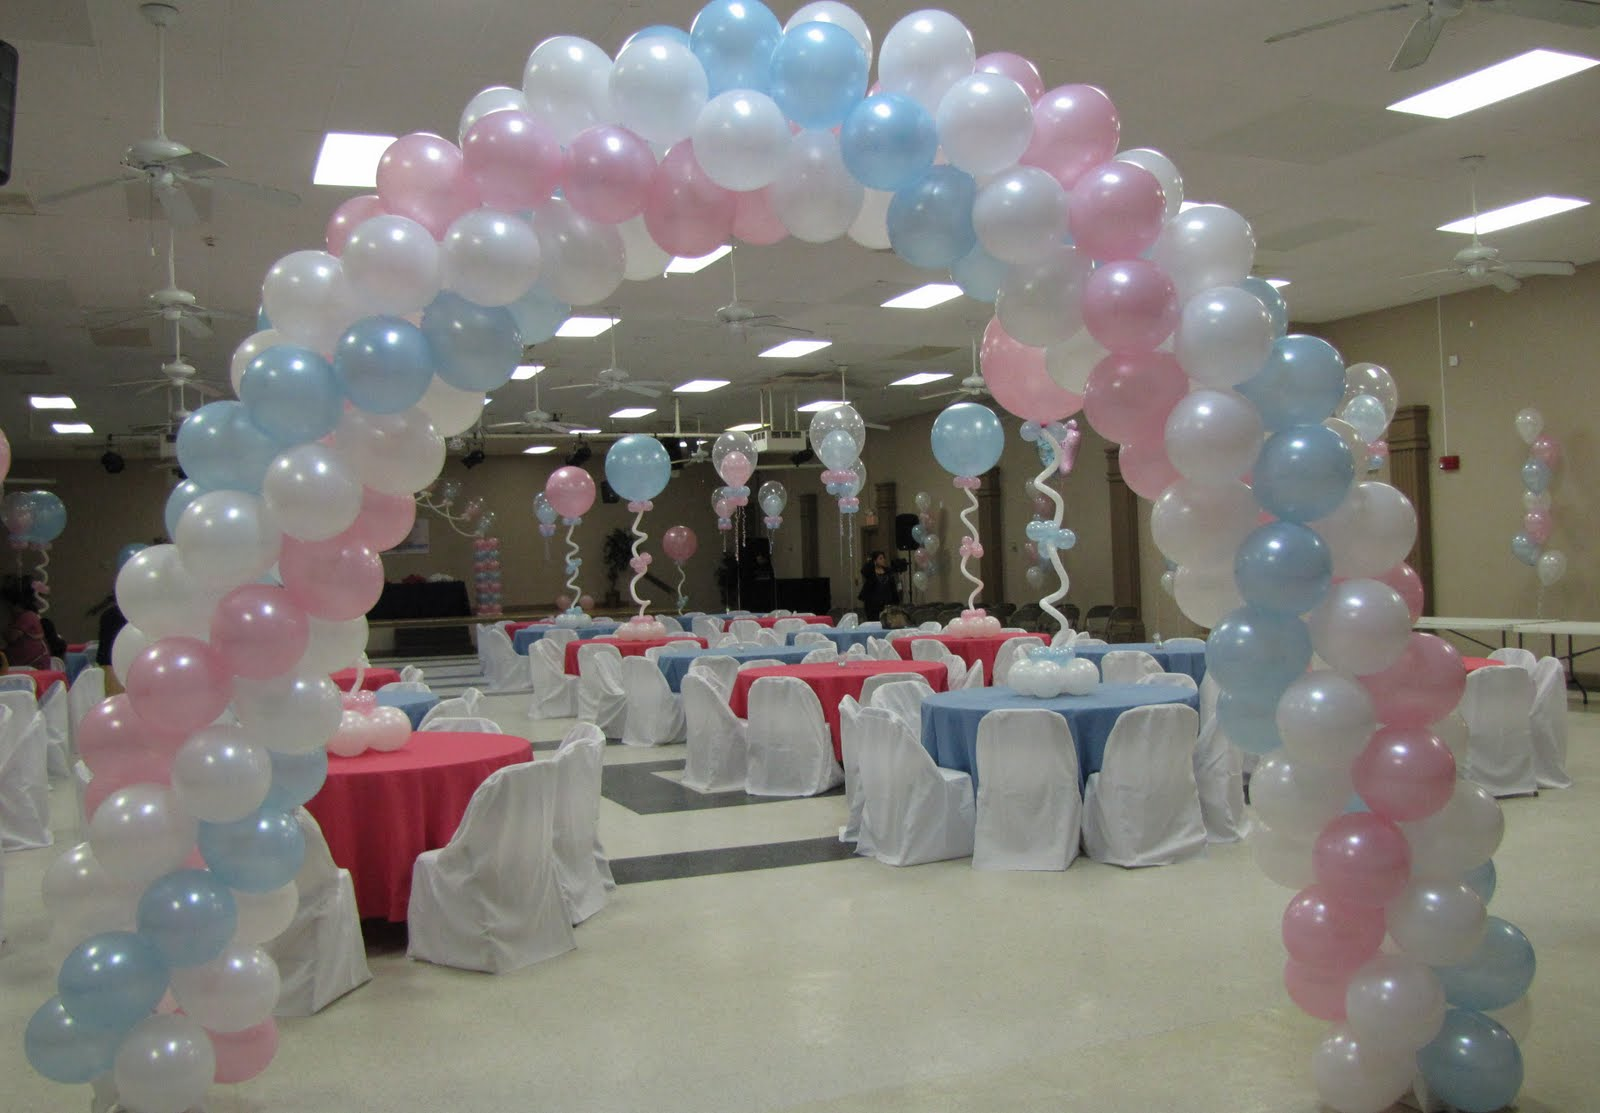 balloons decorations for baby shower party favors ideas ForBaby Shower Decoration Images